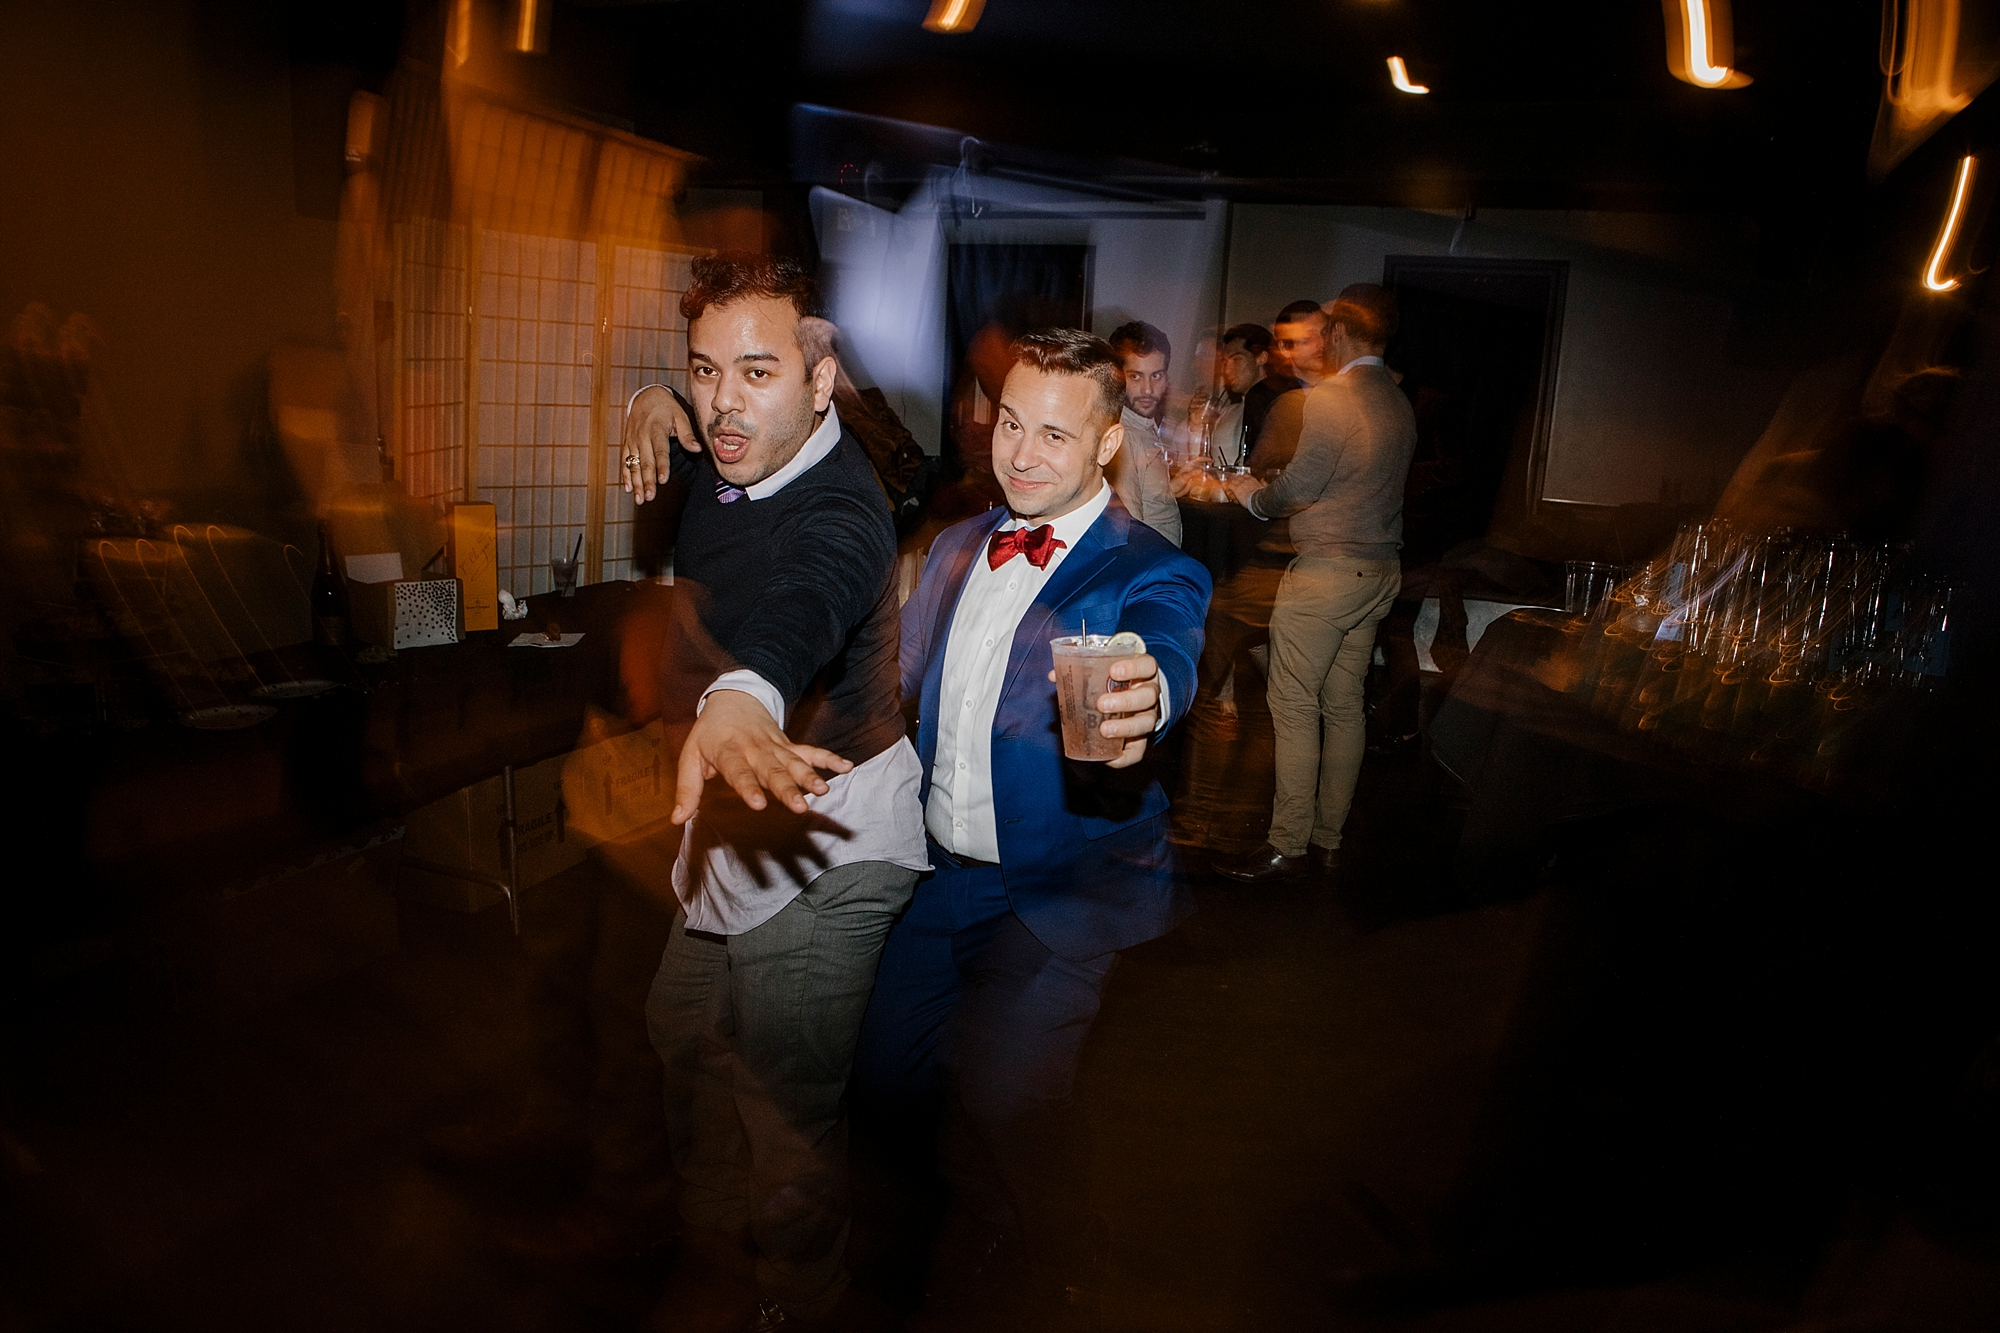 Joe_Mac_Creative_Philadelphia_Philly_LGBT_Gay_Engagement_Wedding_Photography__0163.jpg